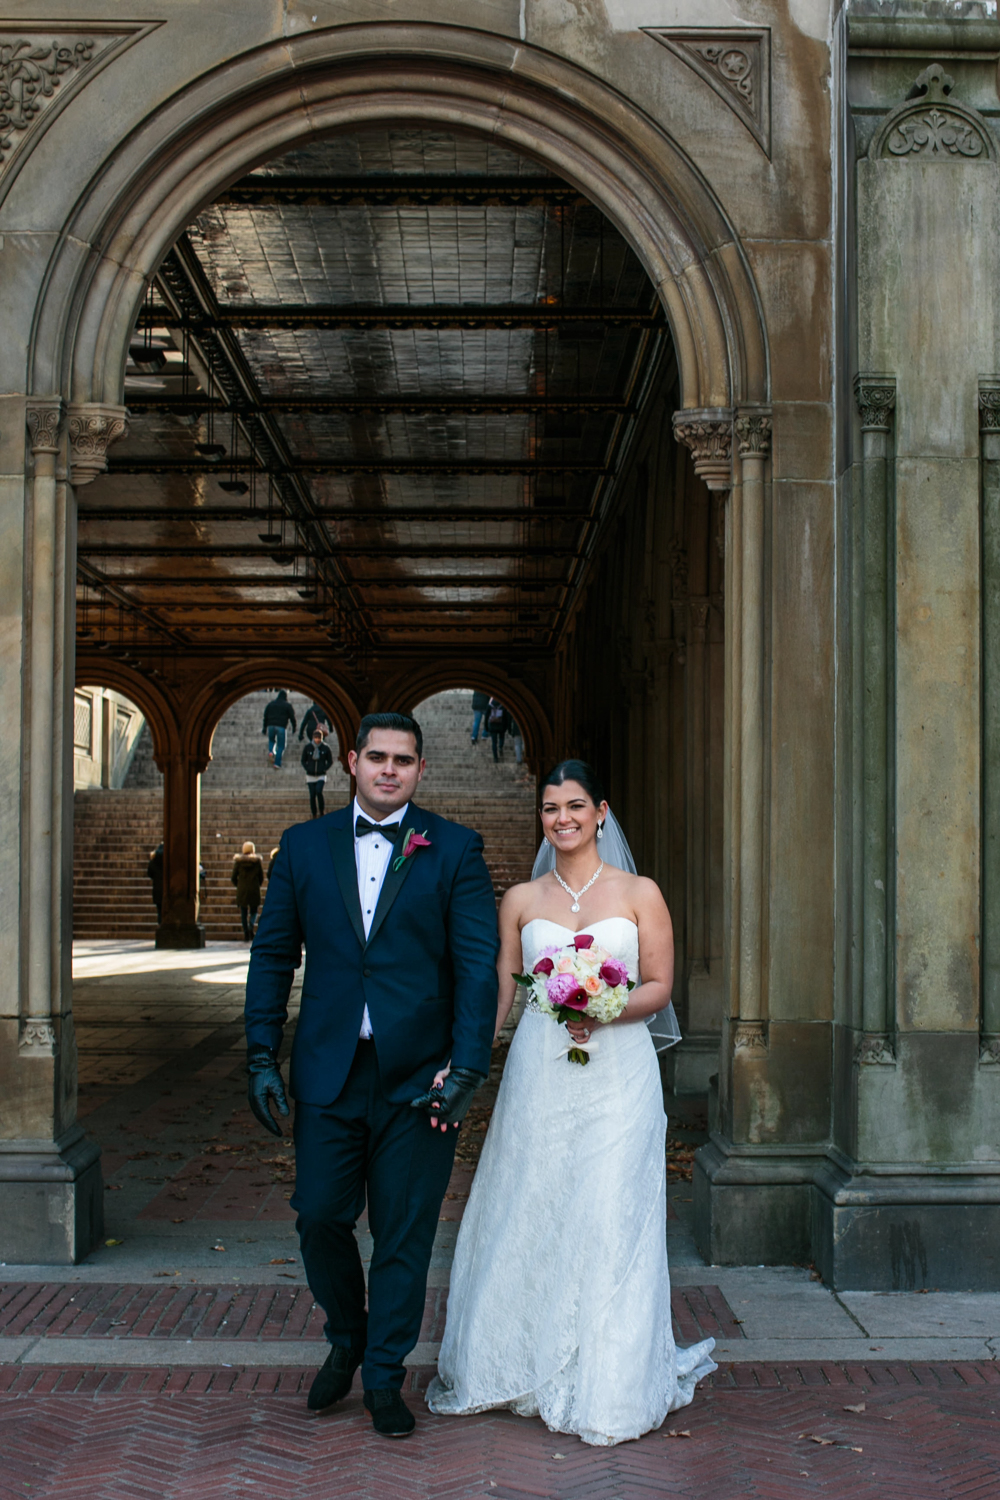 Newlyweds under beautiful arches in NYC